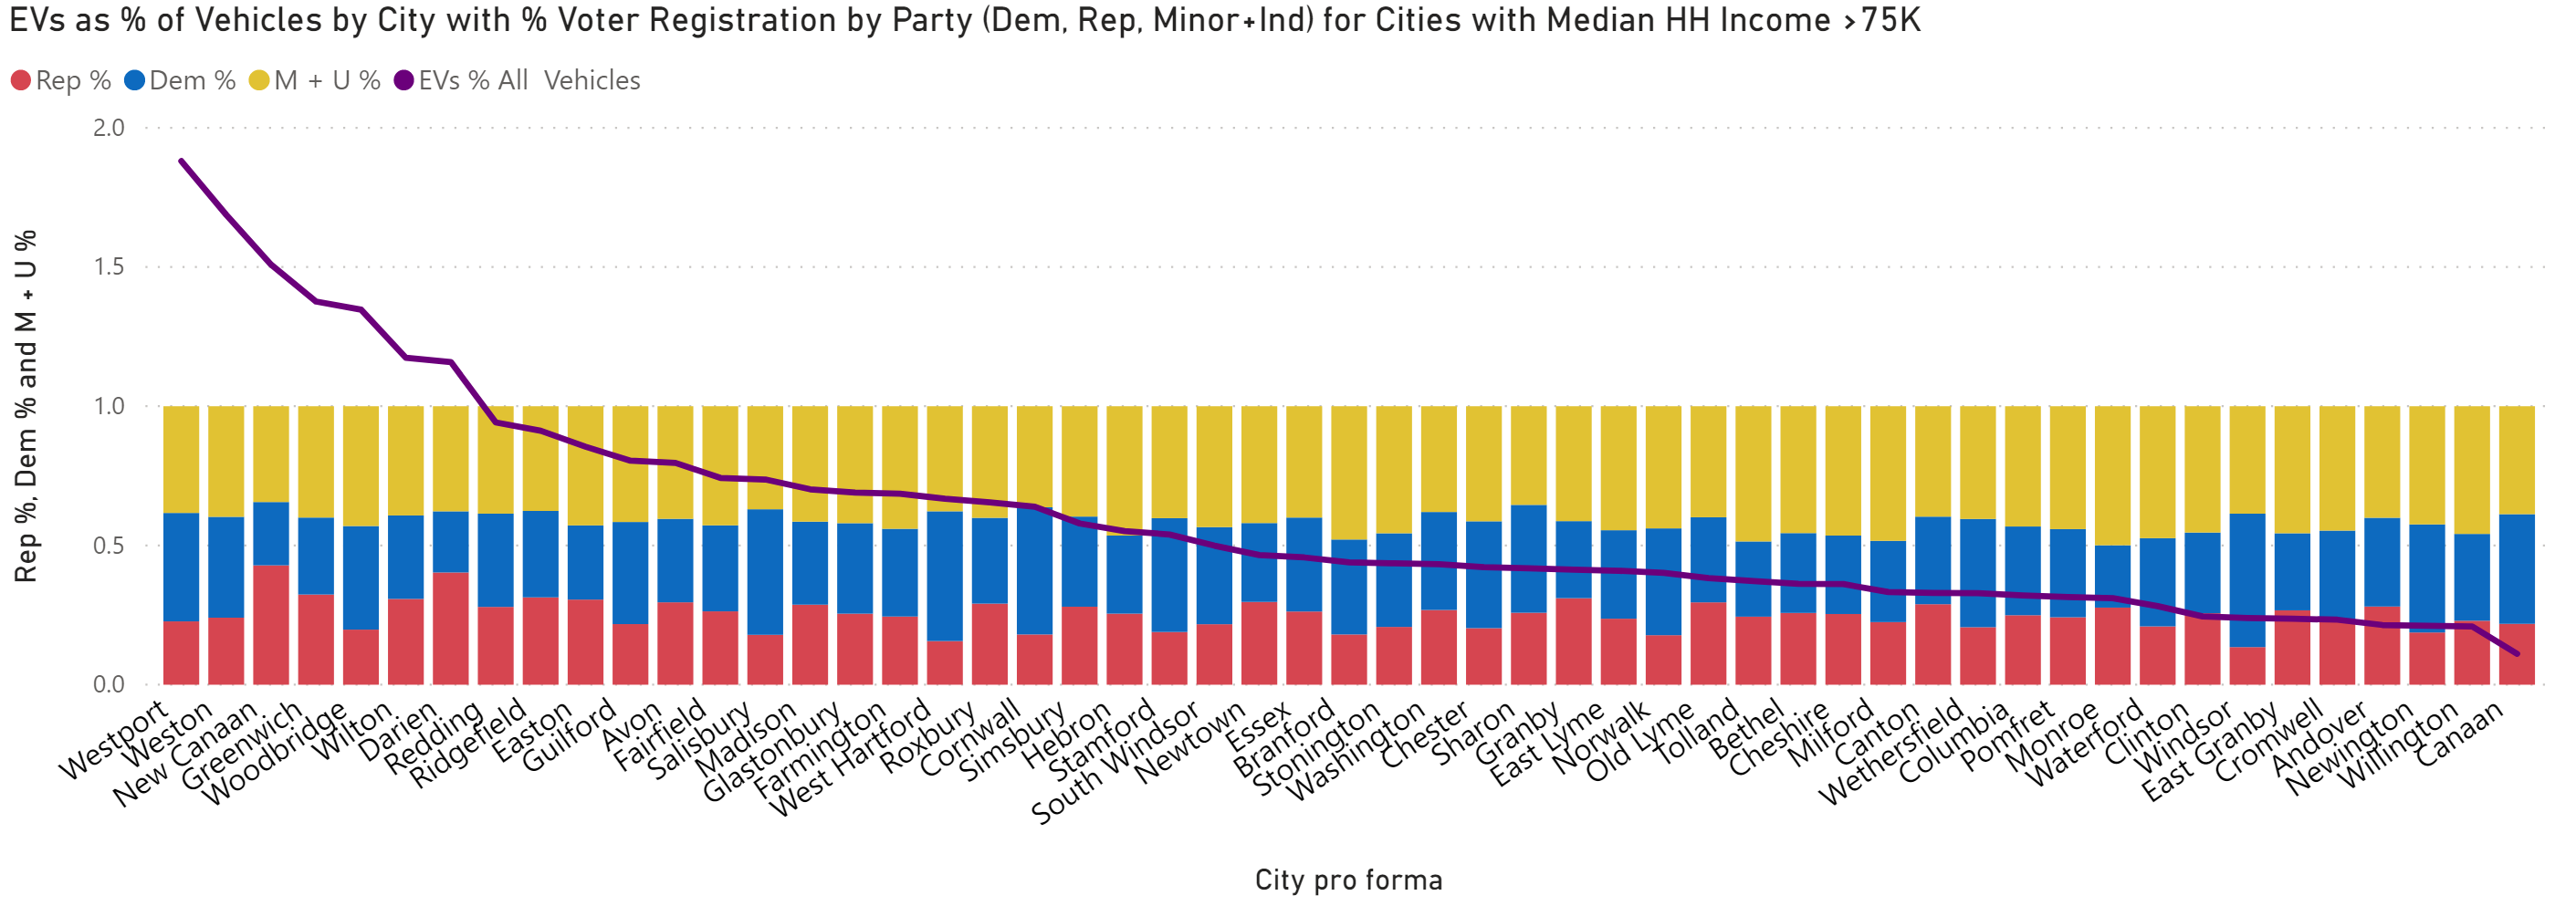 EV incidence in CT cities won by Clinton in 2016